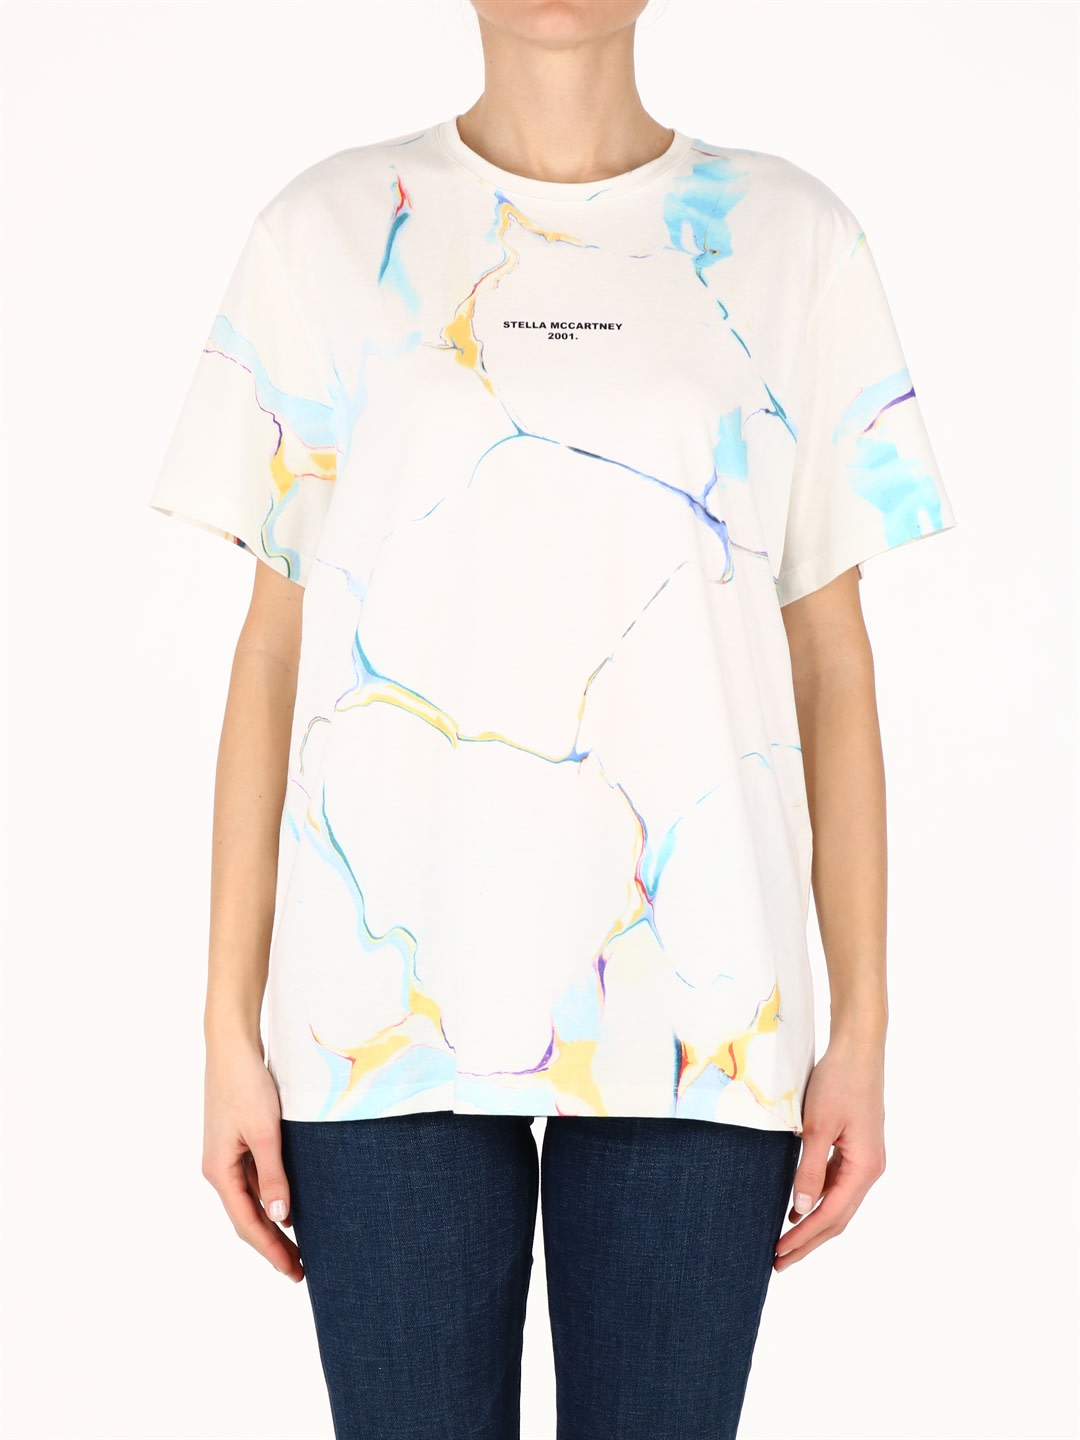 Stella Mccartney PRINTED T-SHIRT WHITE